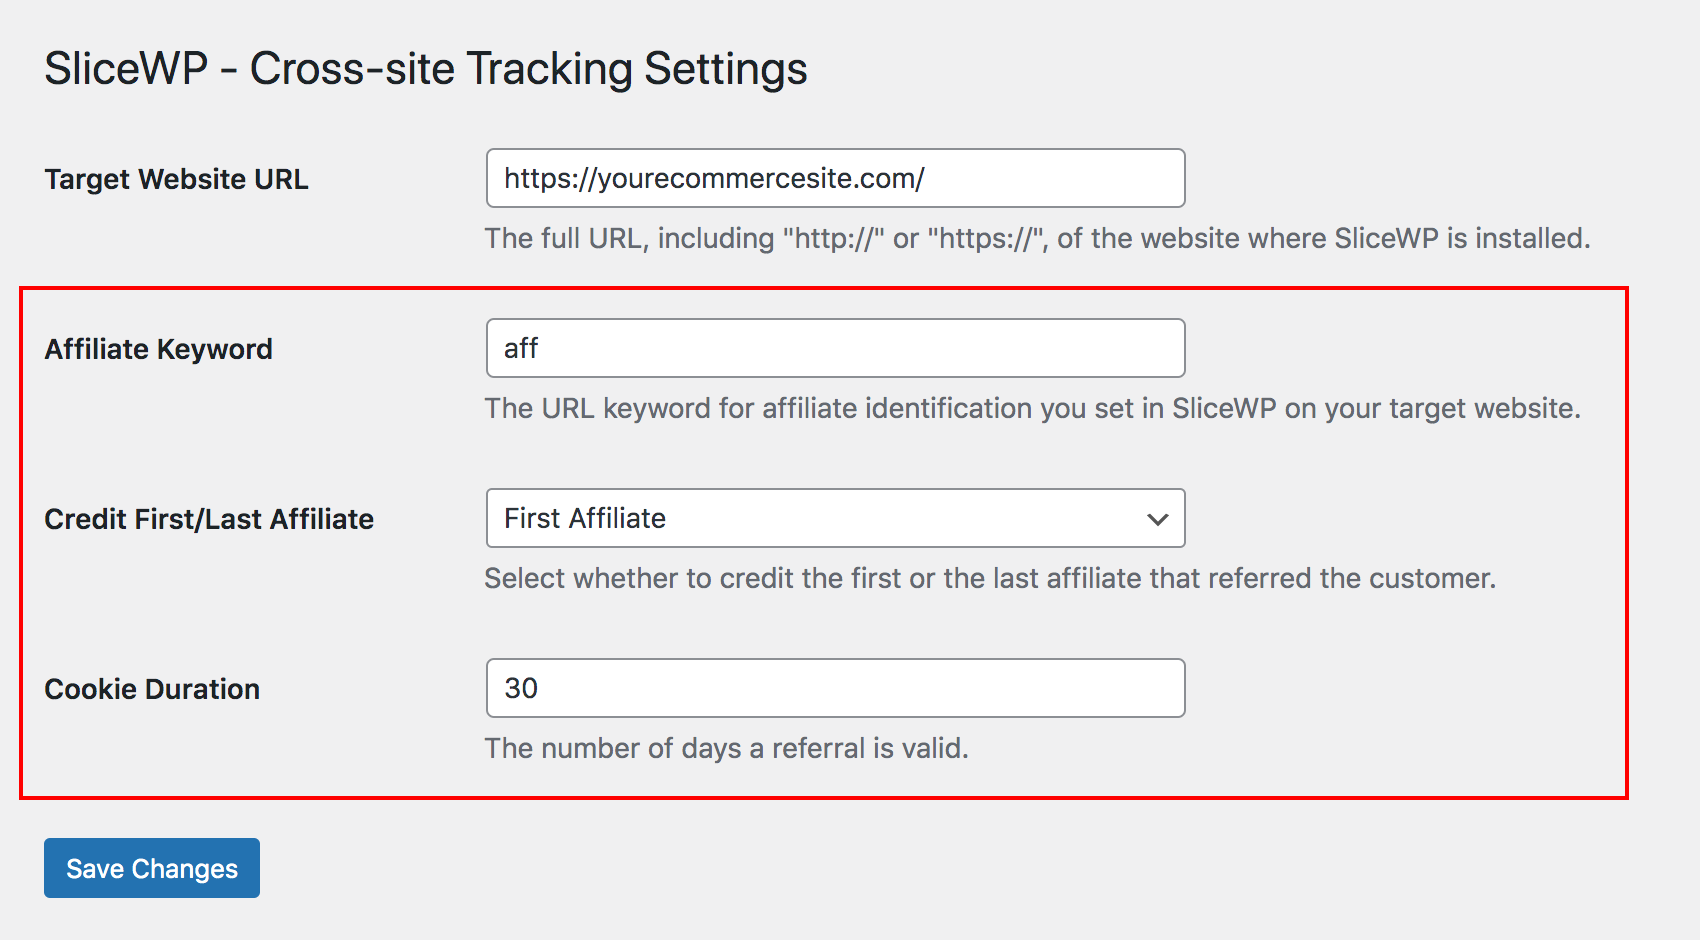 Affiliate Keyword, Credit First/Last Affiliate and Cookie Duration options in SliceWP Cross-site Tracking add-on.